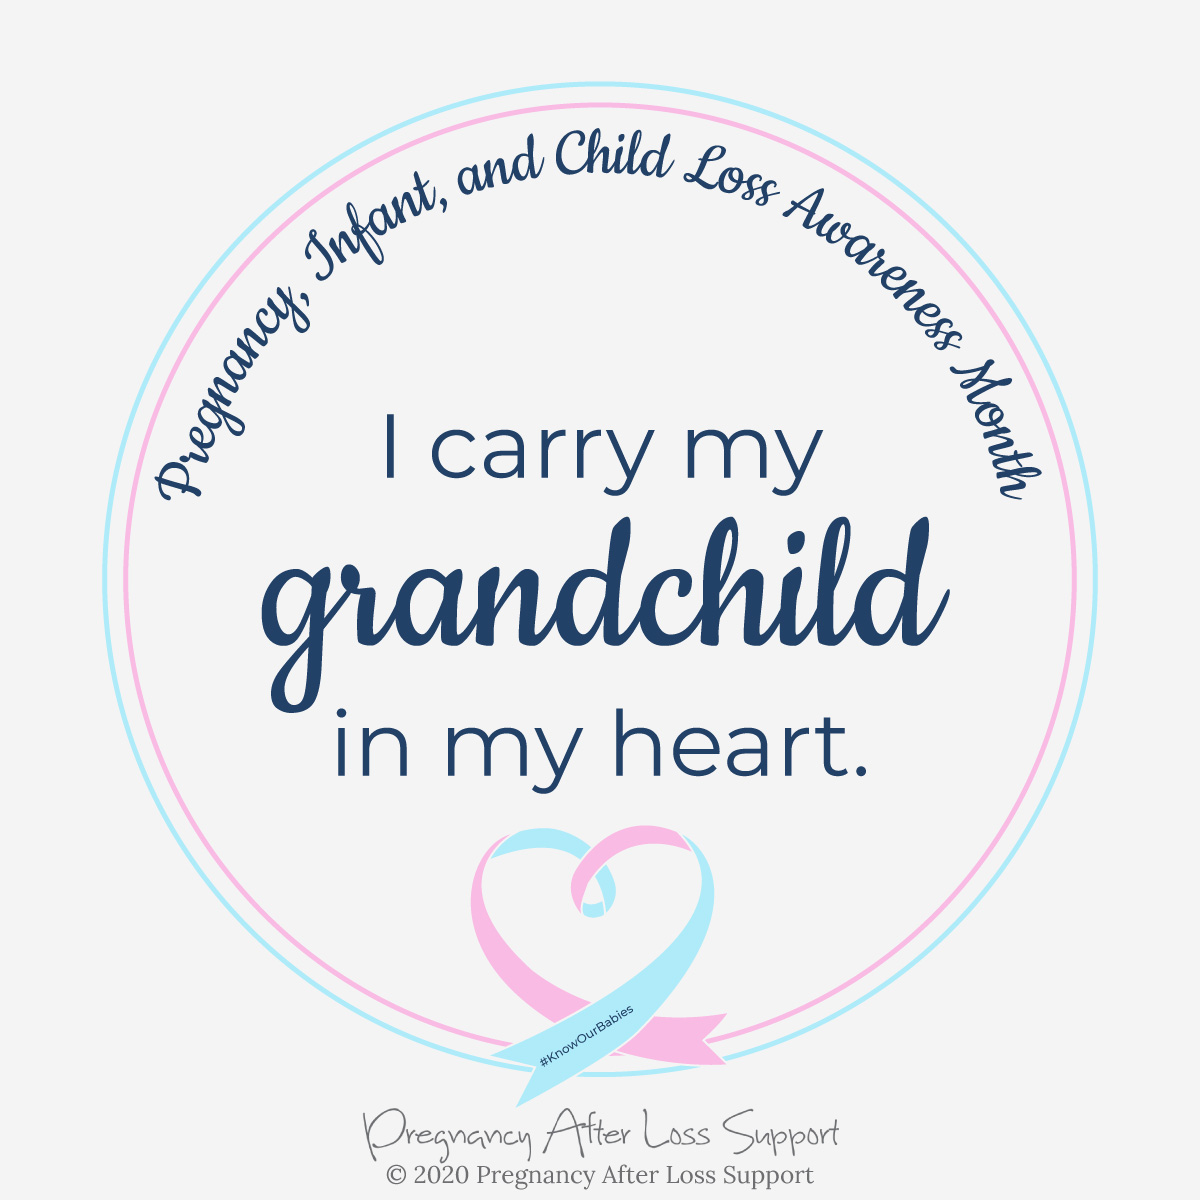 I carry my grandchild in my heart - Pregnancy, Infant, and Child Loss Awareness Month